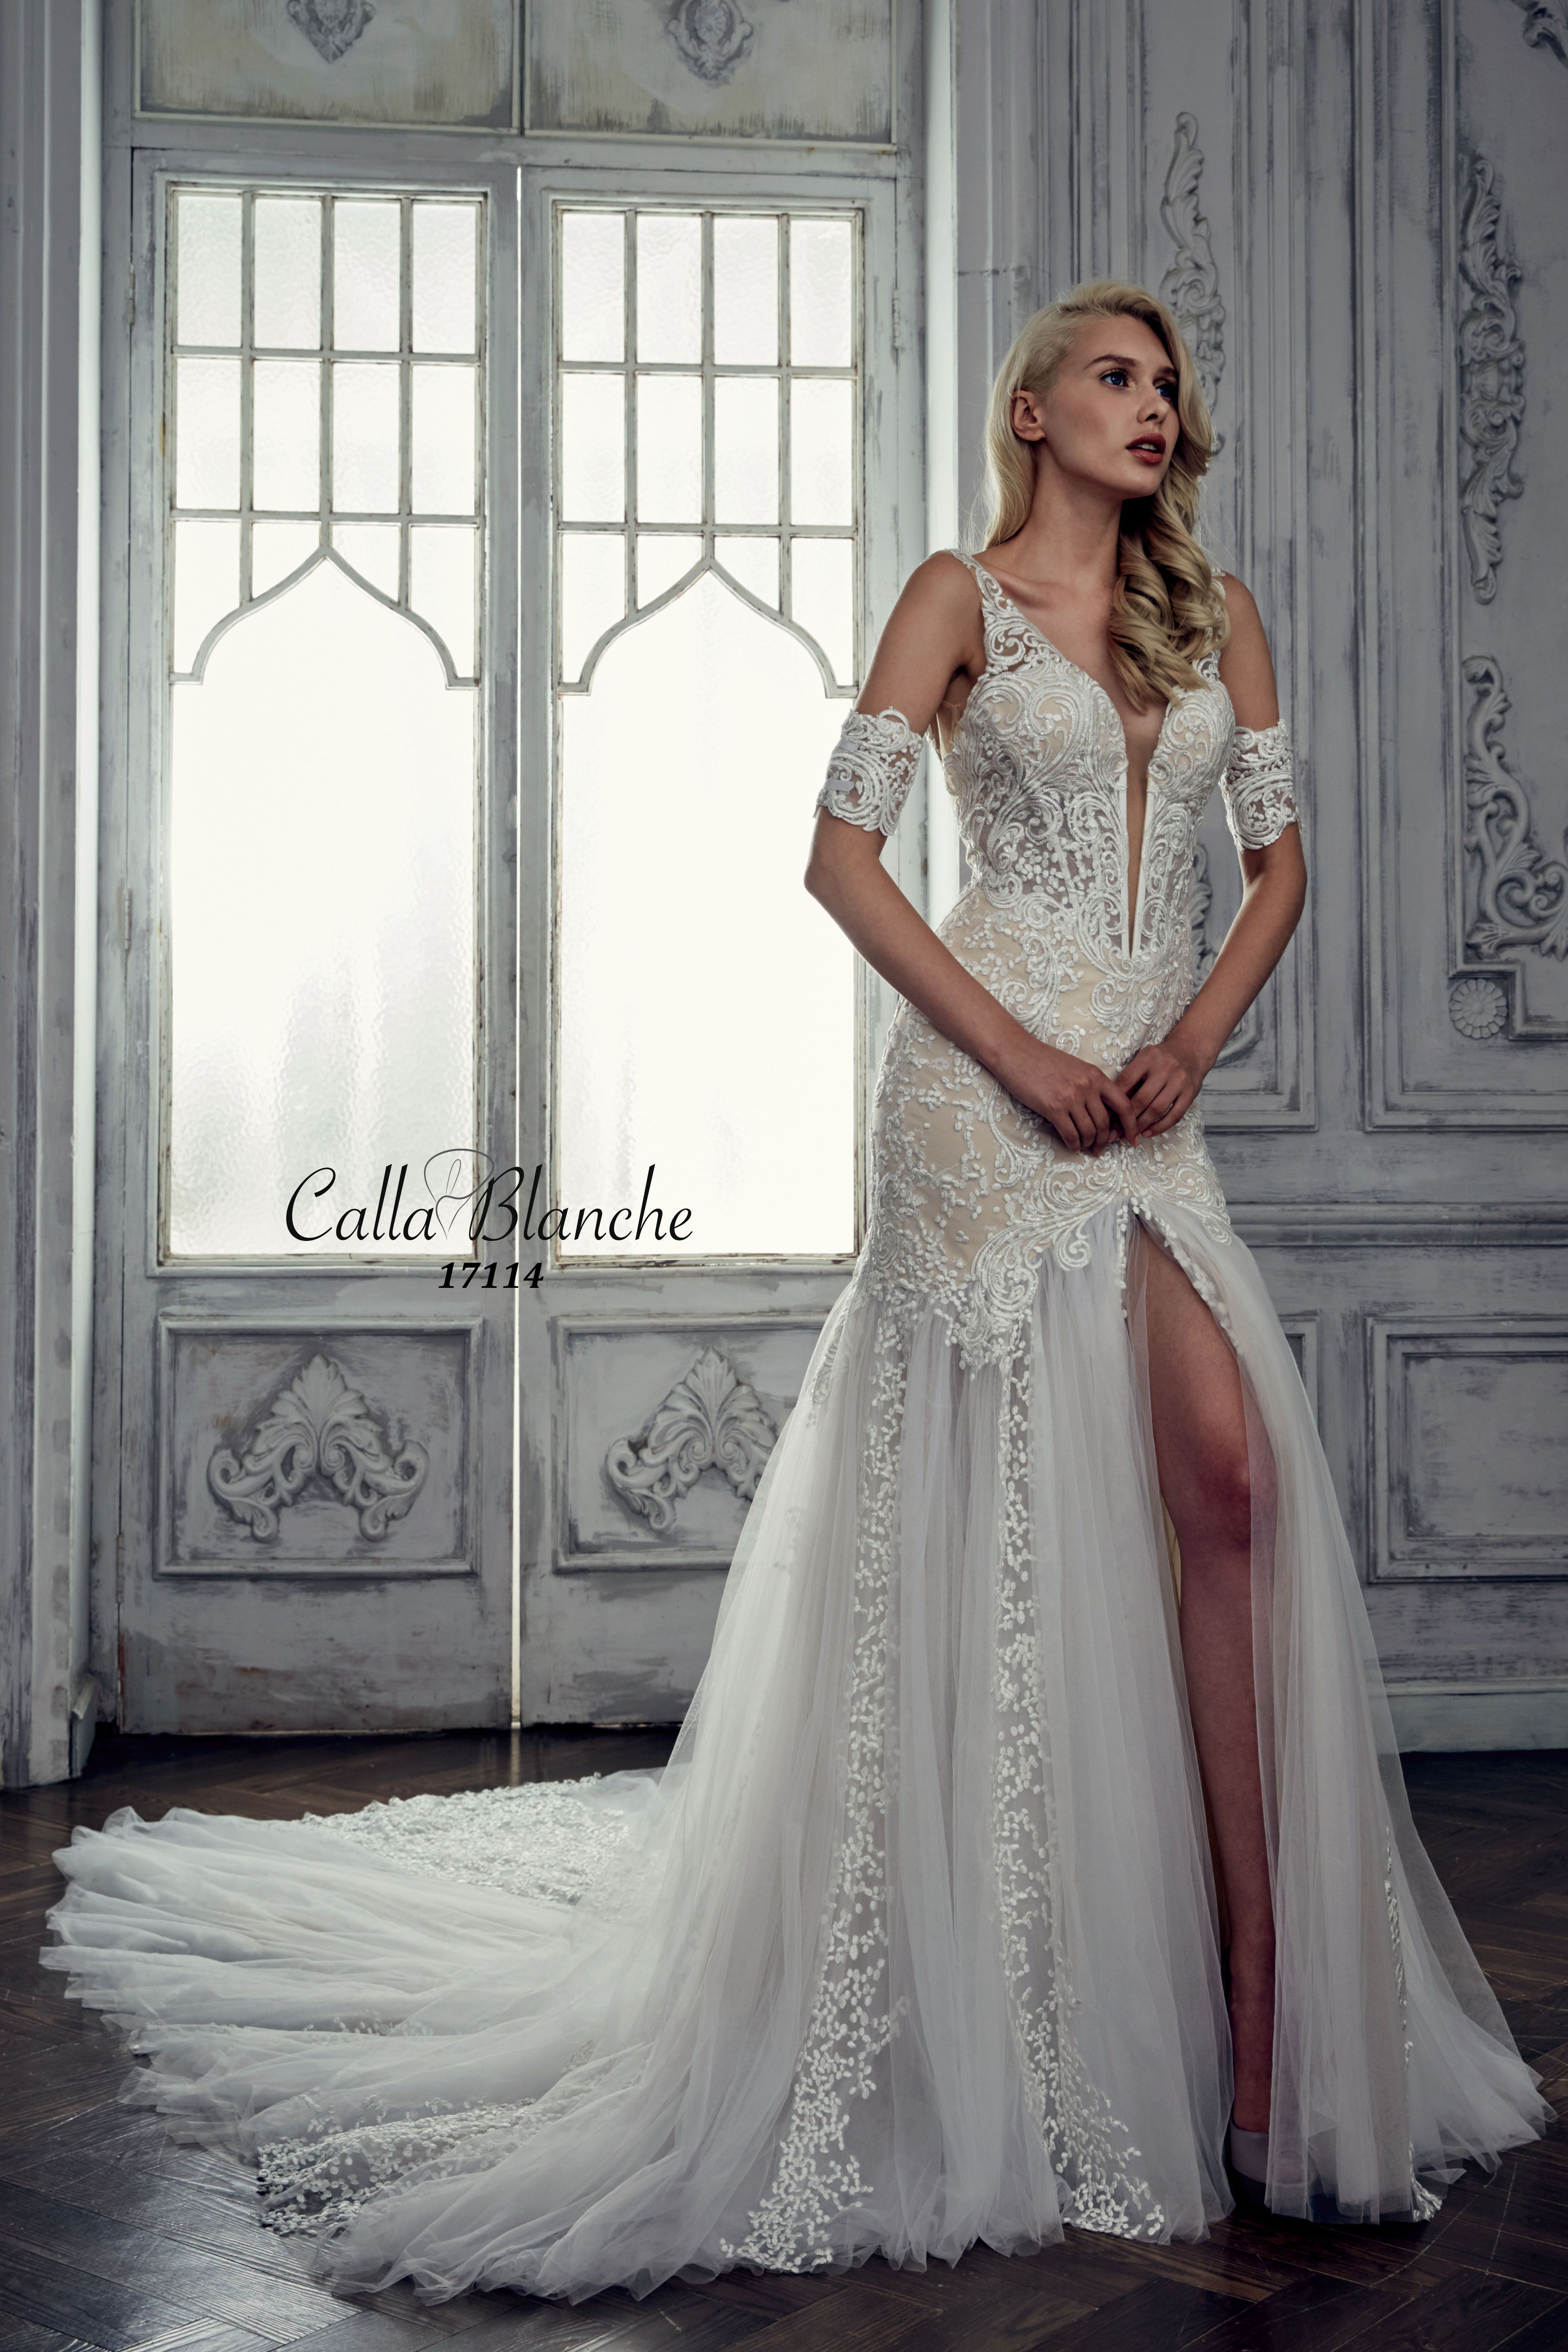 Calla blanche wedding dressgown jocelyn ivory trumpet style calla blanche wedding dressgown jocelyn ivory trumpet style wedding dress with lace junglespirit Images